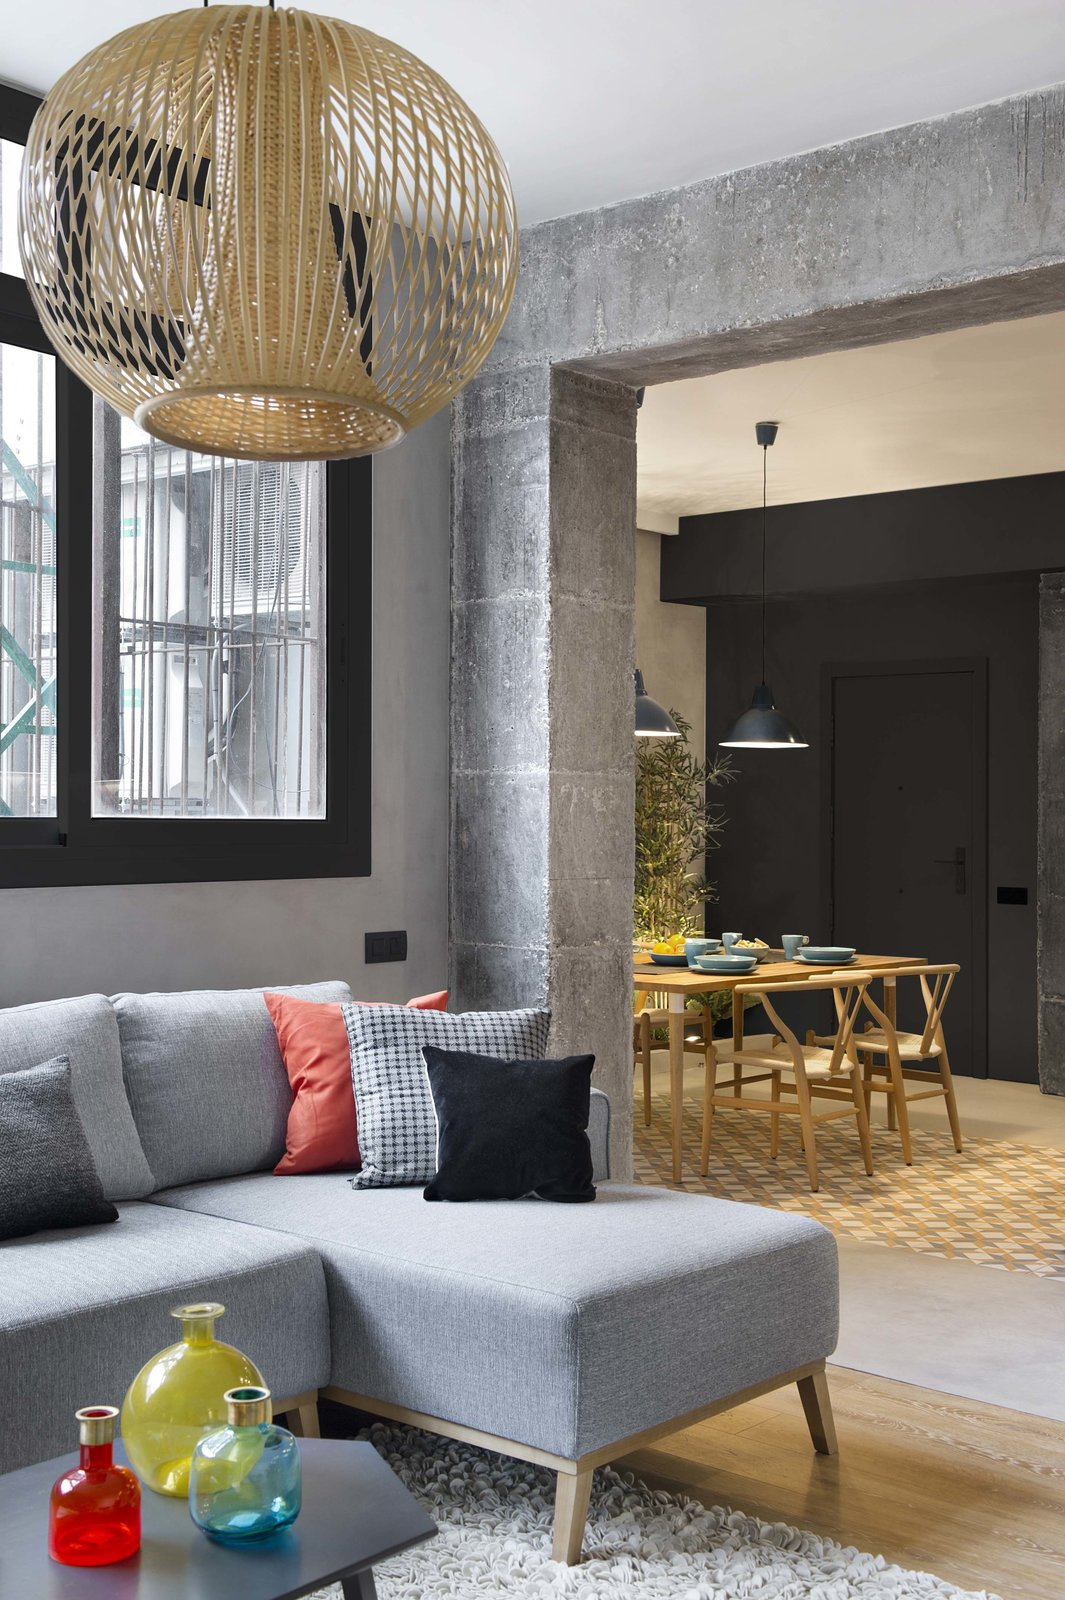 Living Room, Sofa, Pendant Lighting, and Medium Hardwood Floor  Photo 6 of 11 in In This Compact Barcelona Apartment, Space Is Maximized With Smart Material Choices